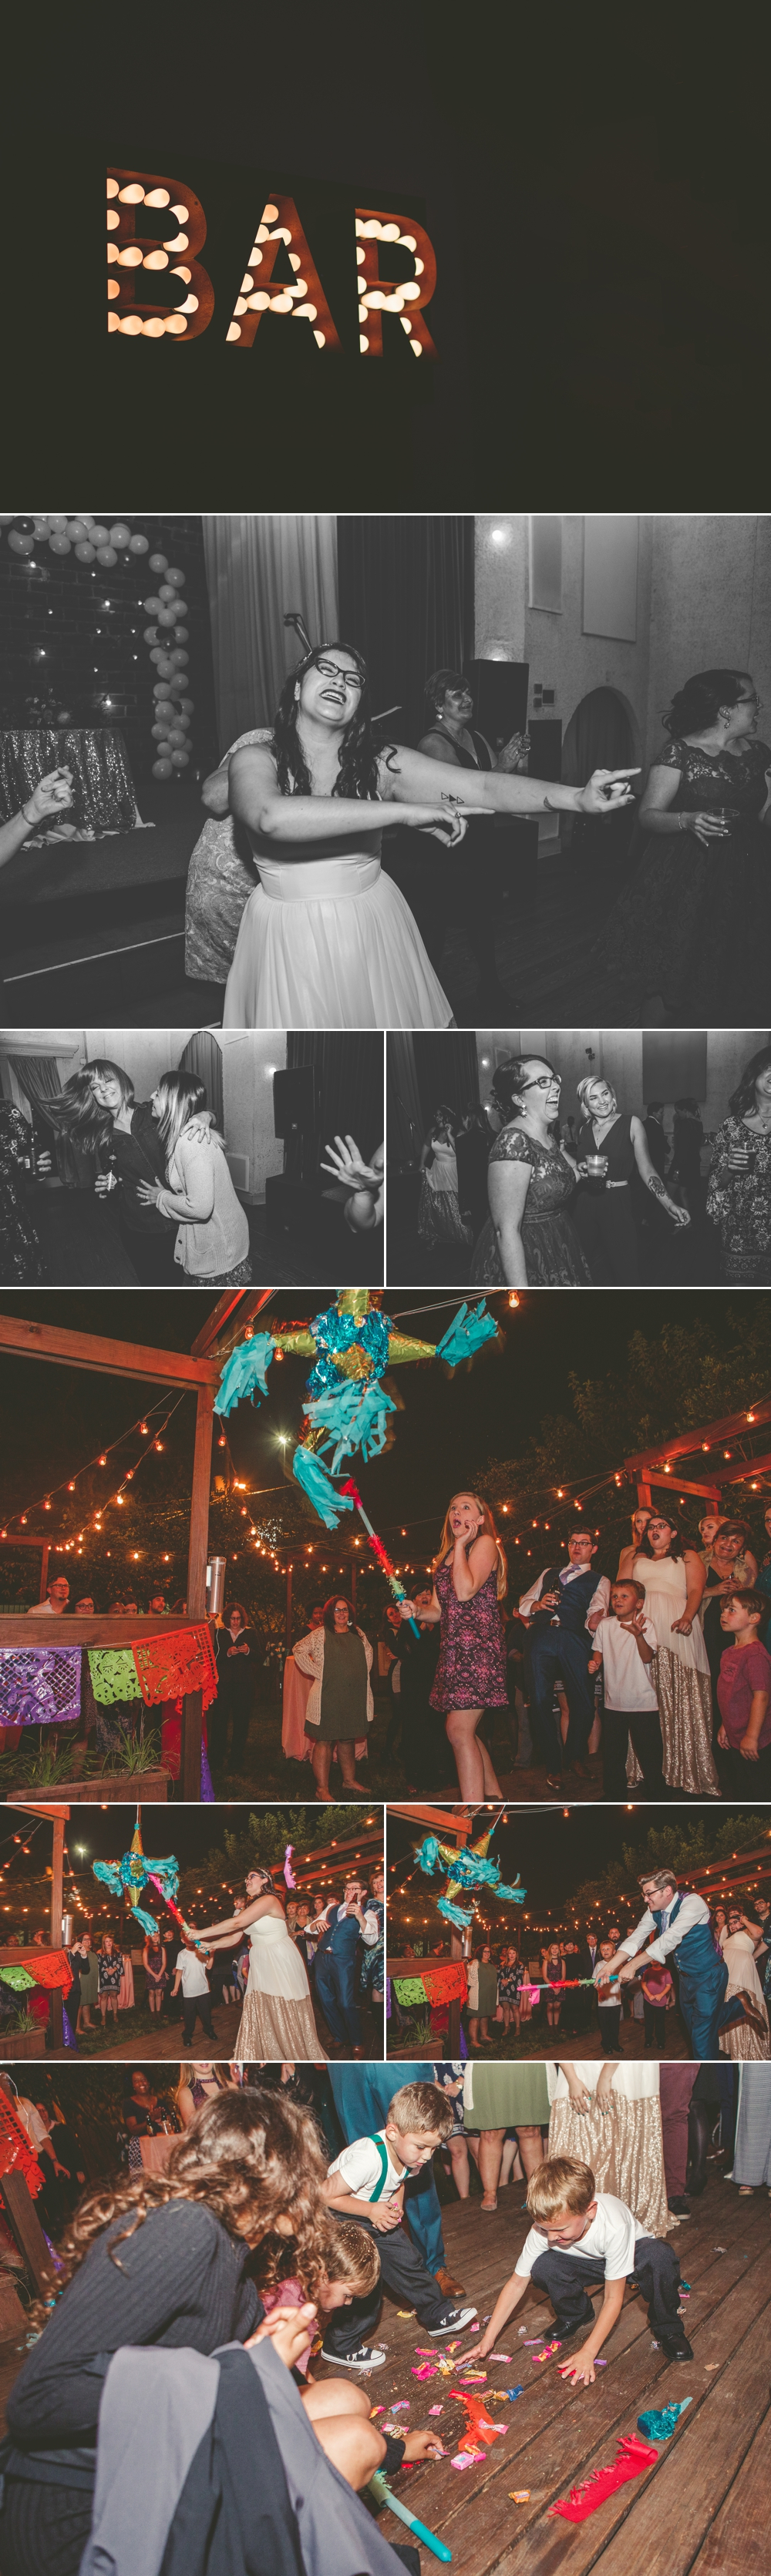 jason_domingues_photography_best_kansas_city_wedding_photographer_kc_weddings_vox_0004.JPG